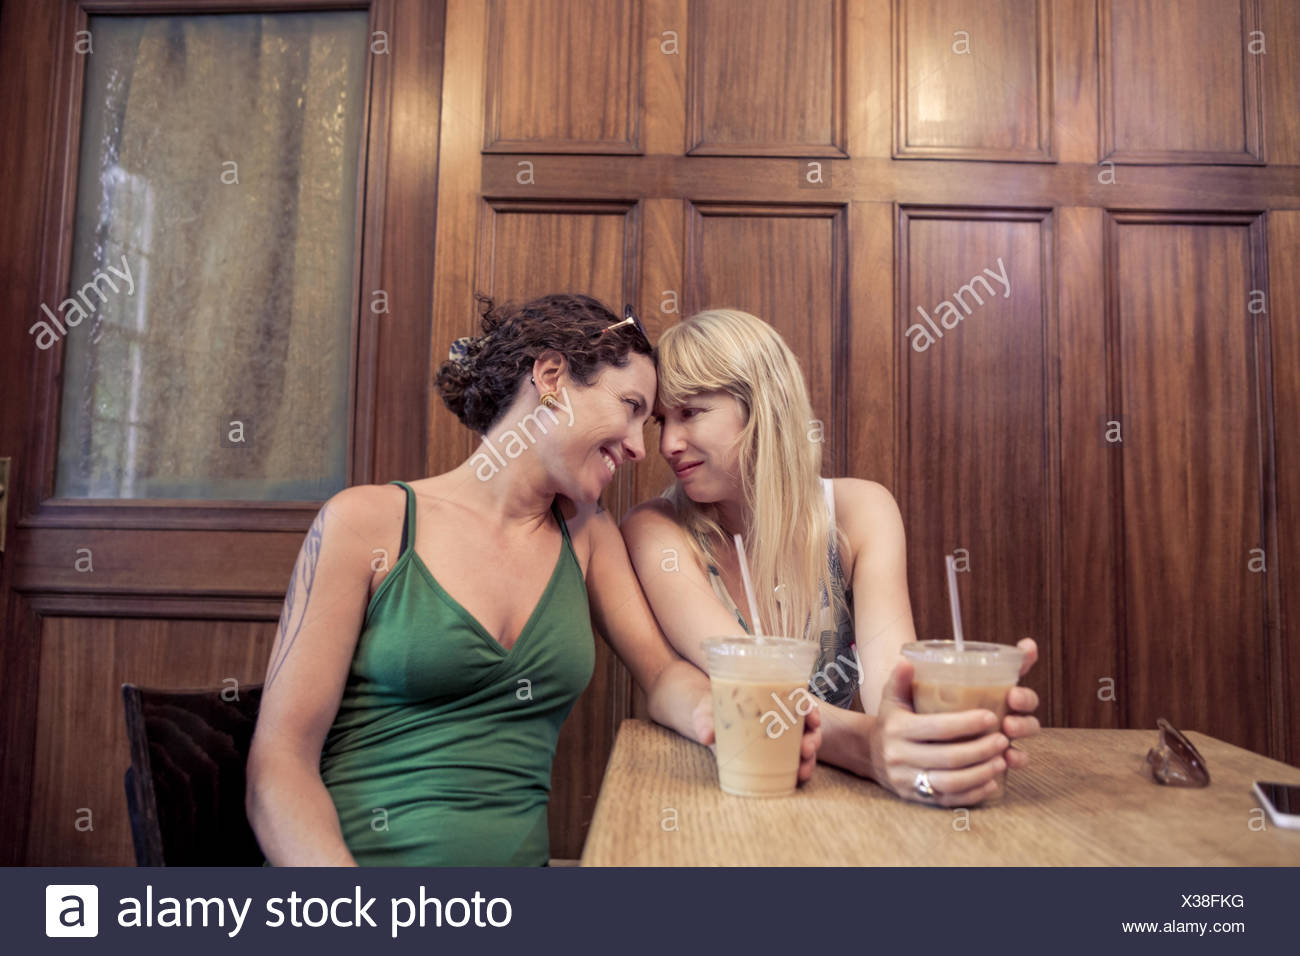 Two women face to face sharing intimacy in cafe - Stock Image